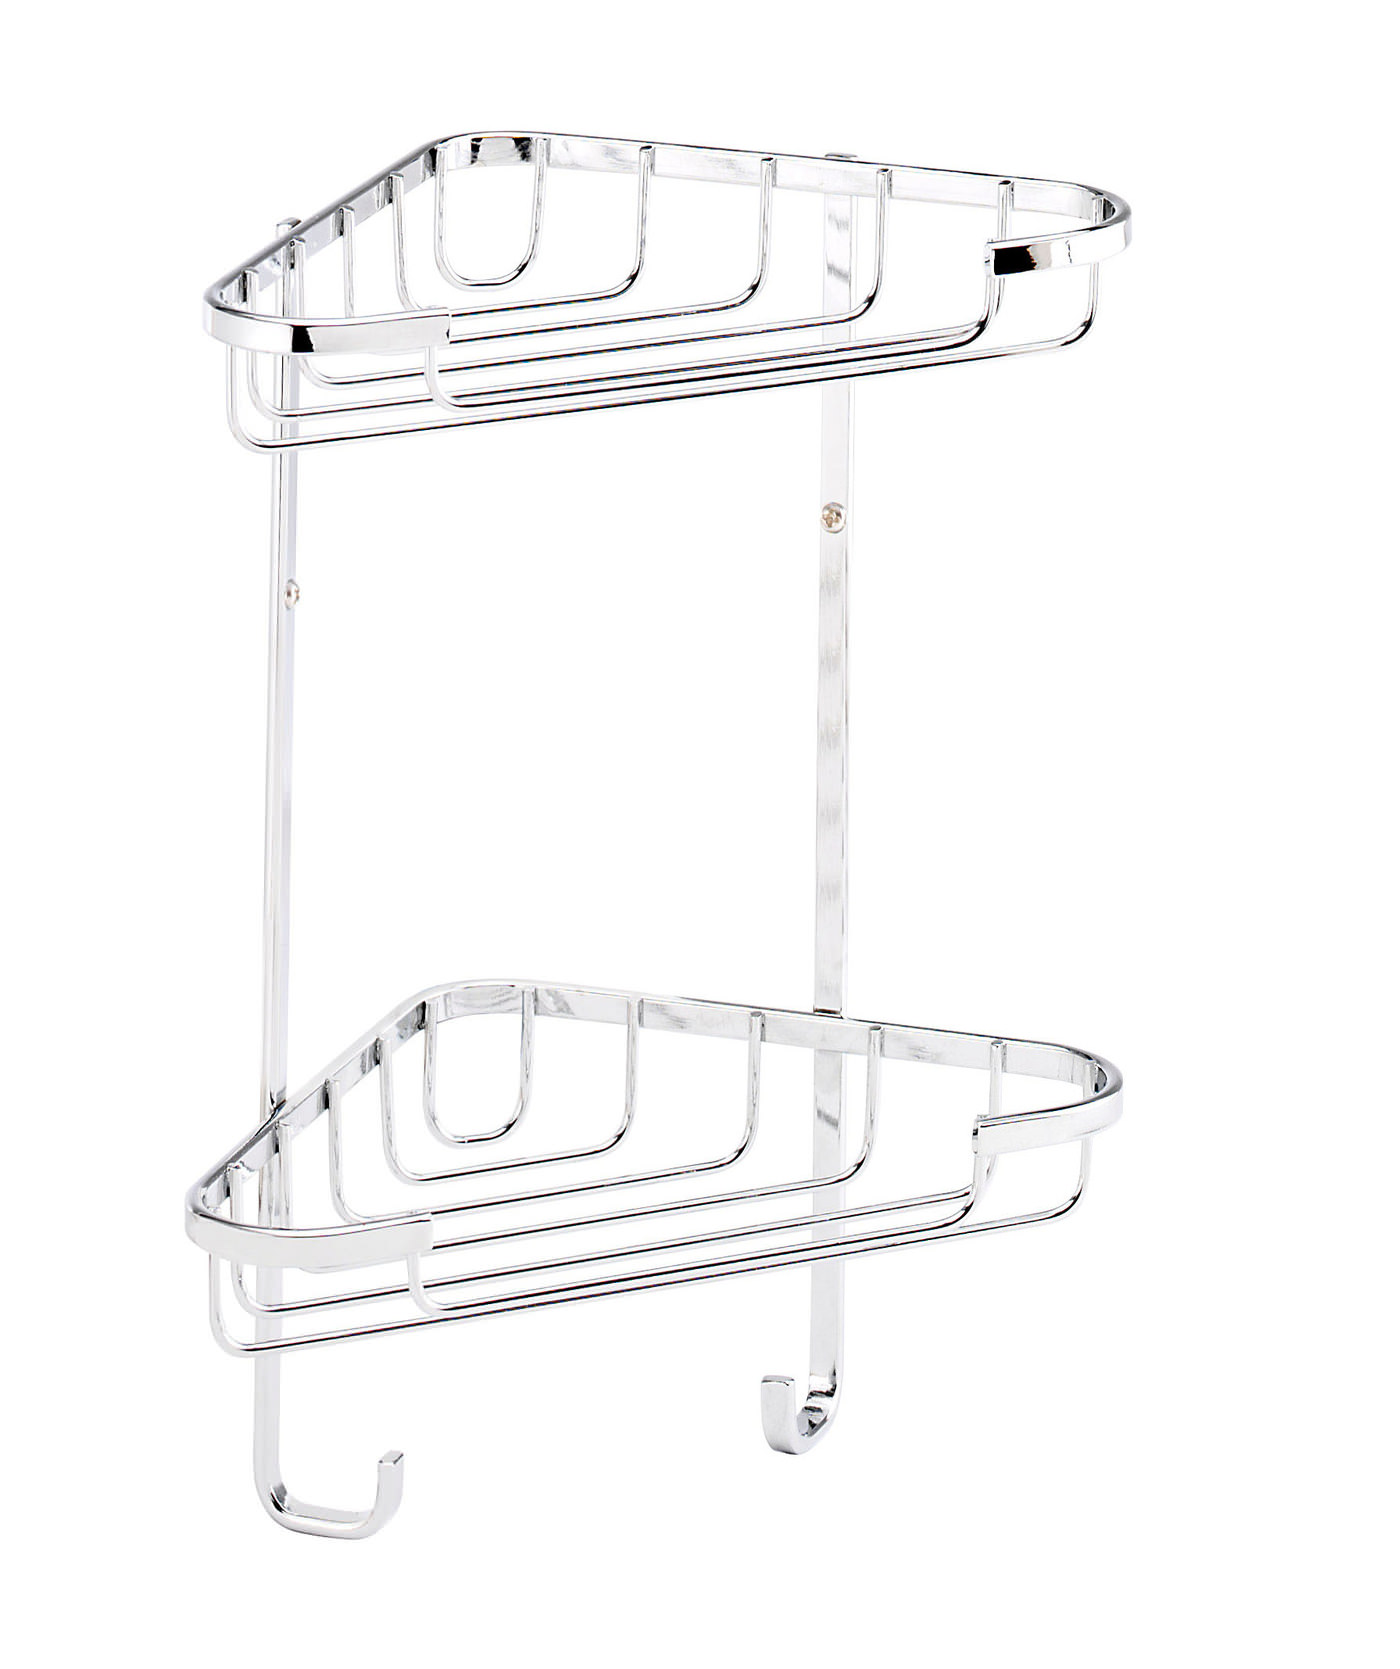 Croydex Stainless Steel Small 2 Tier Corner Basket